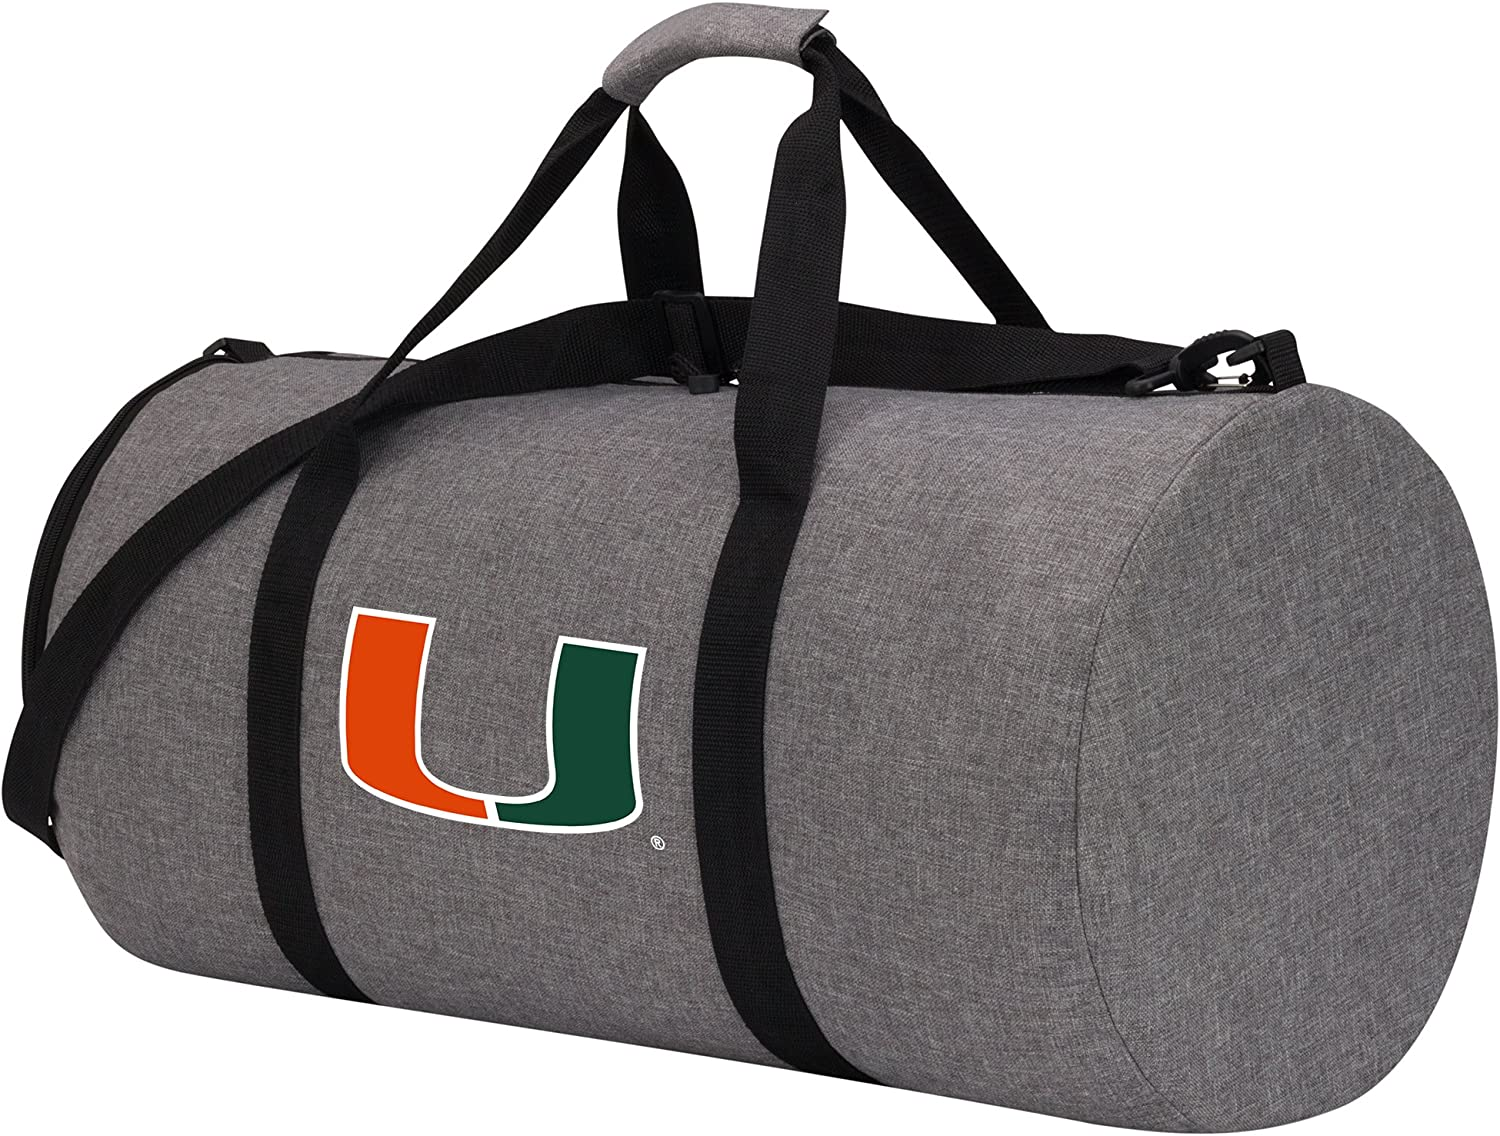 Officially Licensed NCAA Wingman Duffel Bag Multi Color 24 x 12 x 12